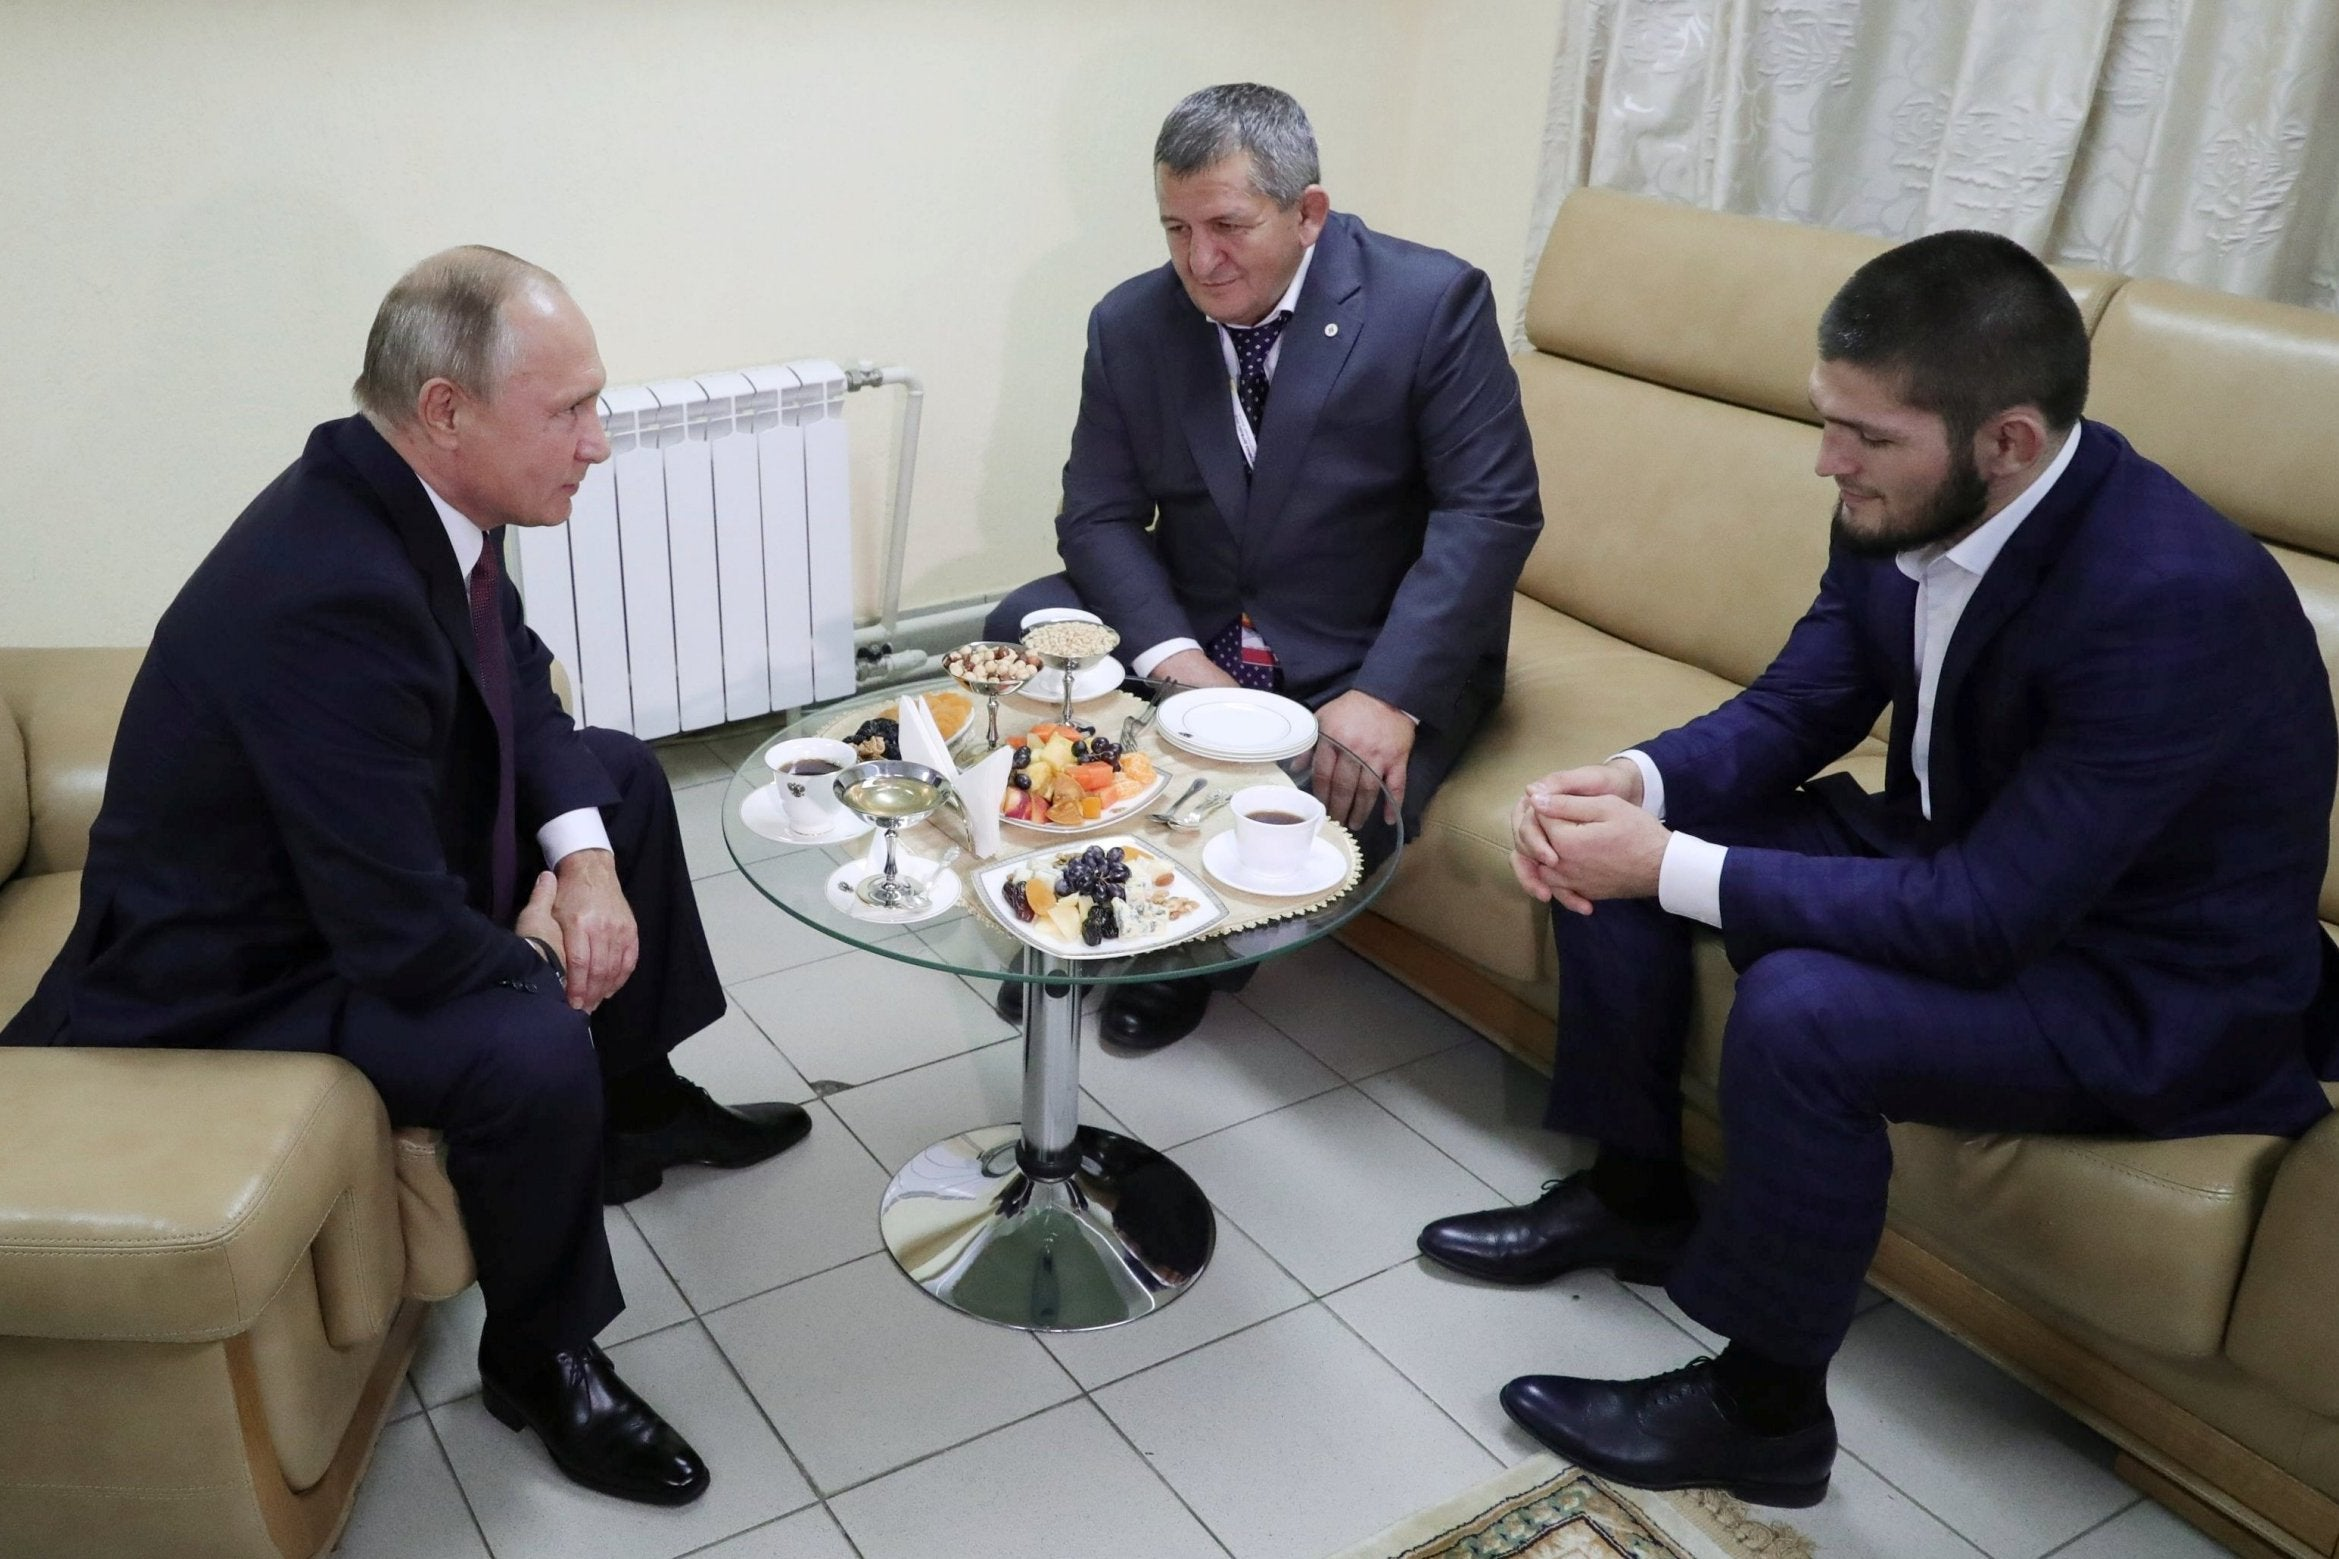 Vladimir Putin tells Khabib's father not to punish his son too severely after UFC 229 brawl